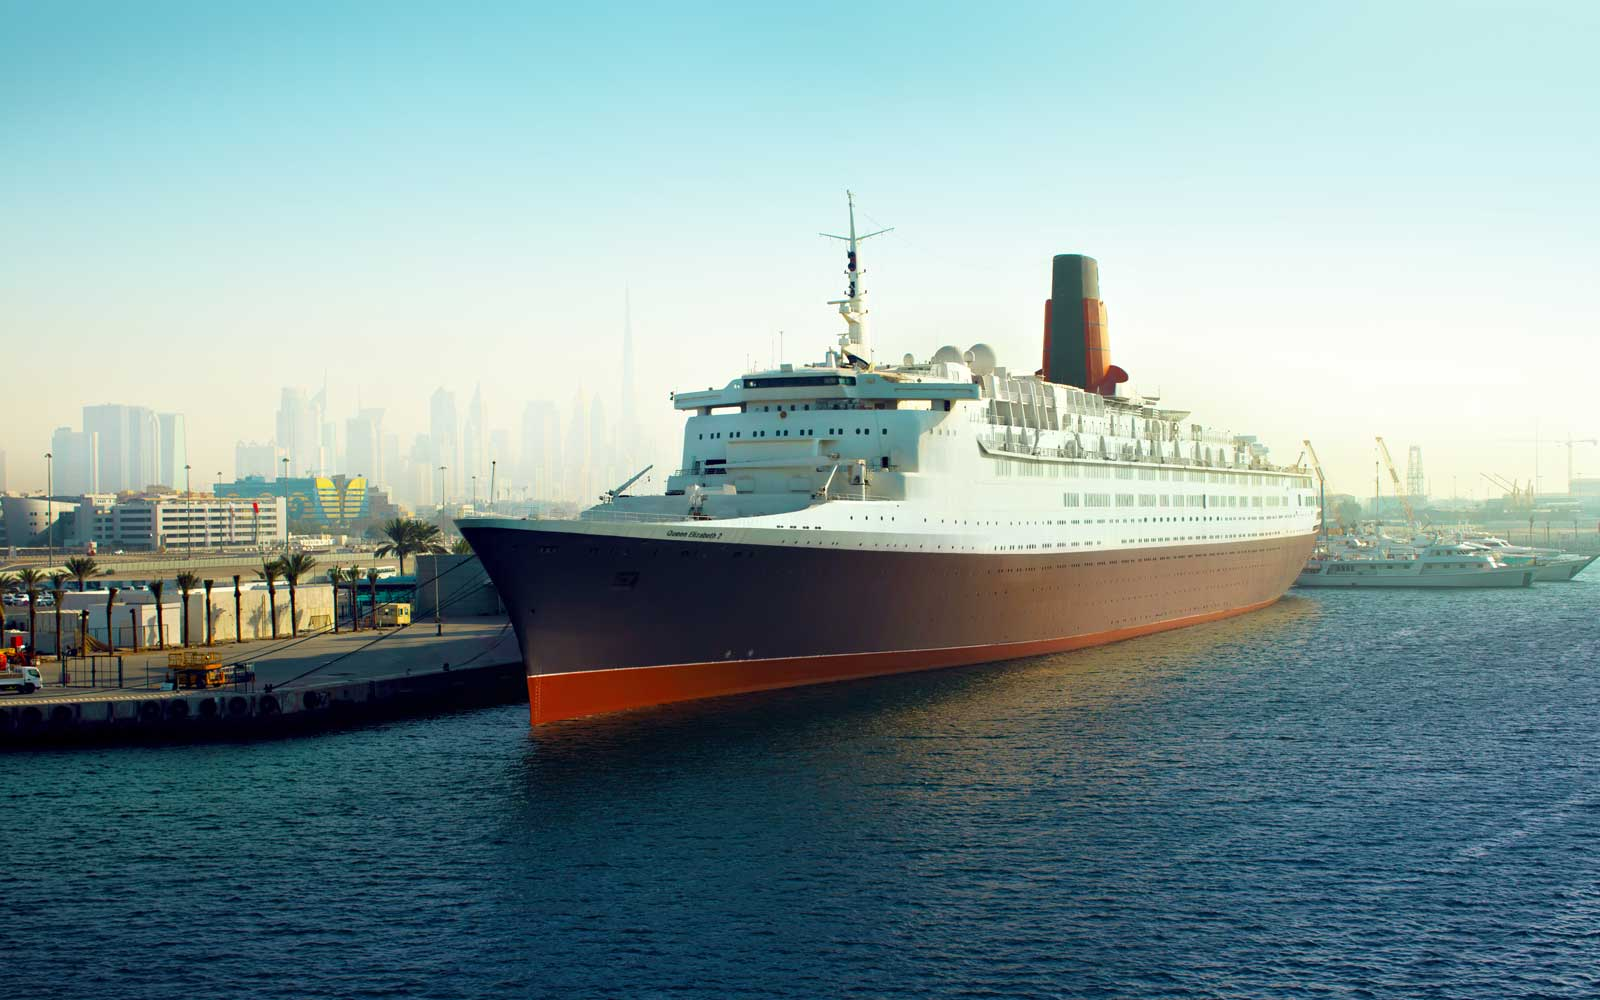 After Years of Delays, the Queen Elizabeth 2 Is Finally Opening as a Floating Hotel